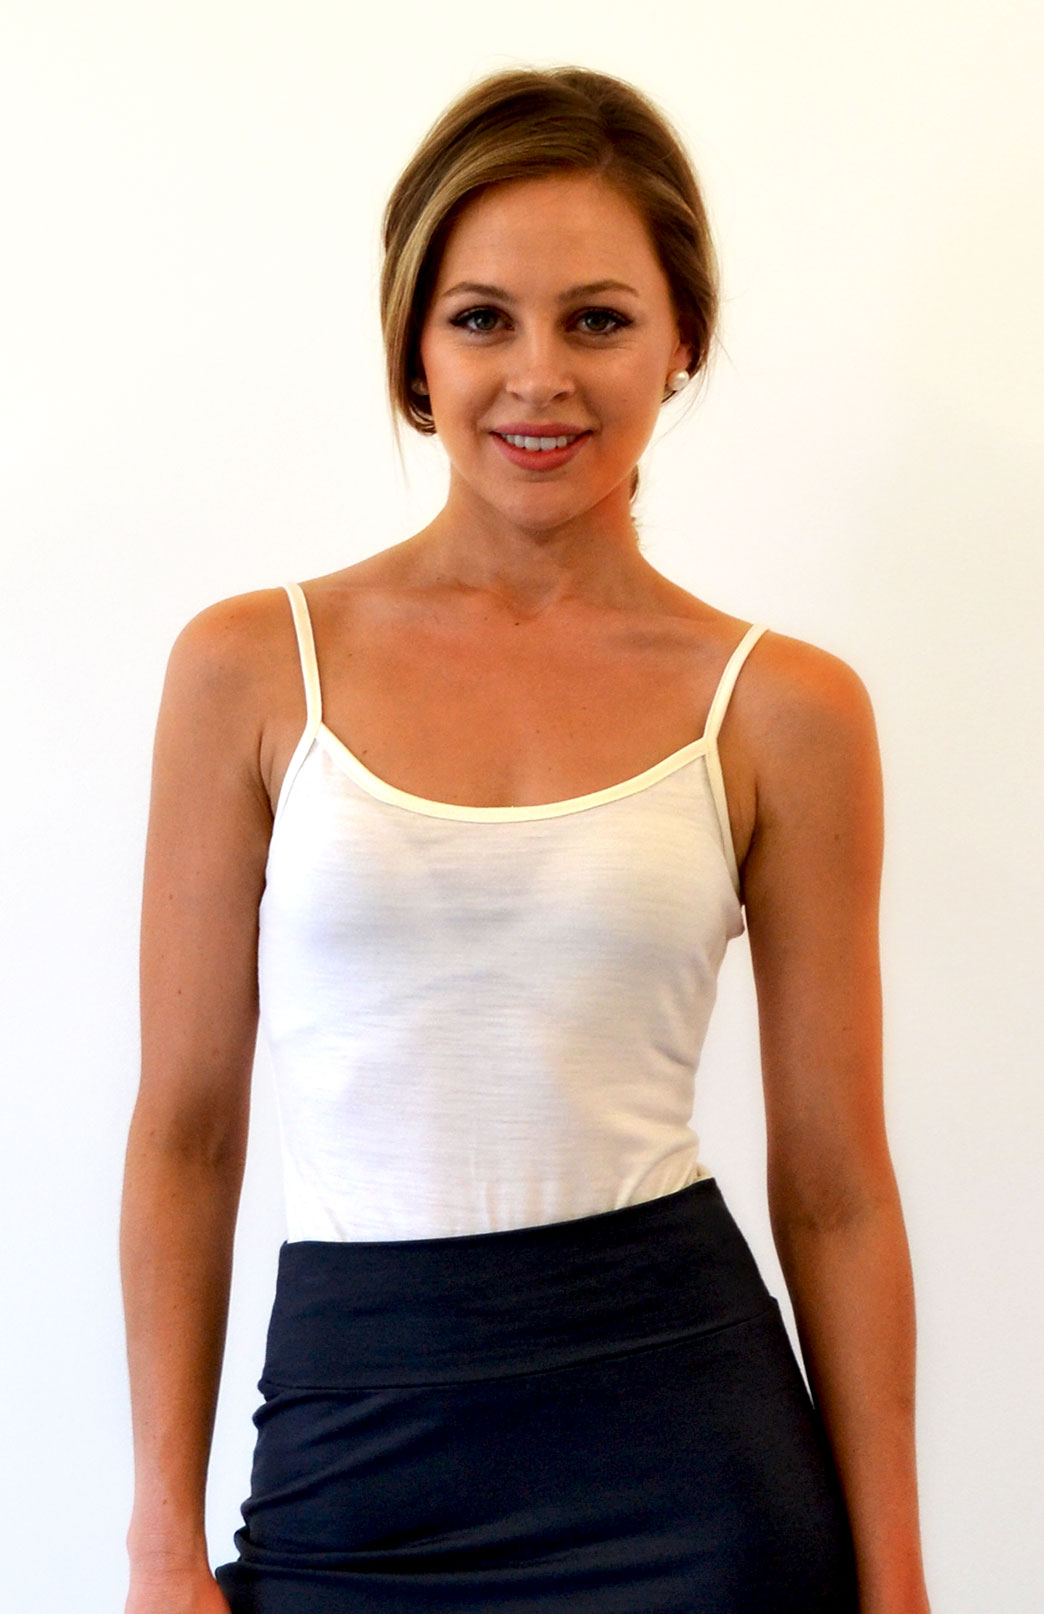 Camisole Top - Women's Wool Cream Camisole Layering Thermal Tank Top - Smitten Merino Tasmania Australia